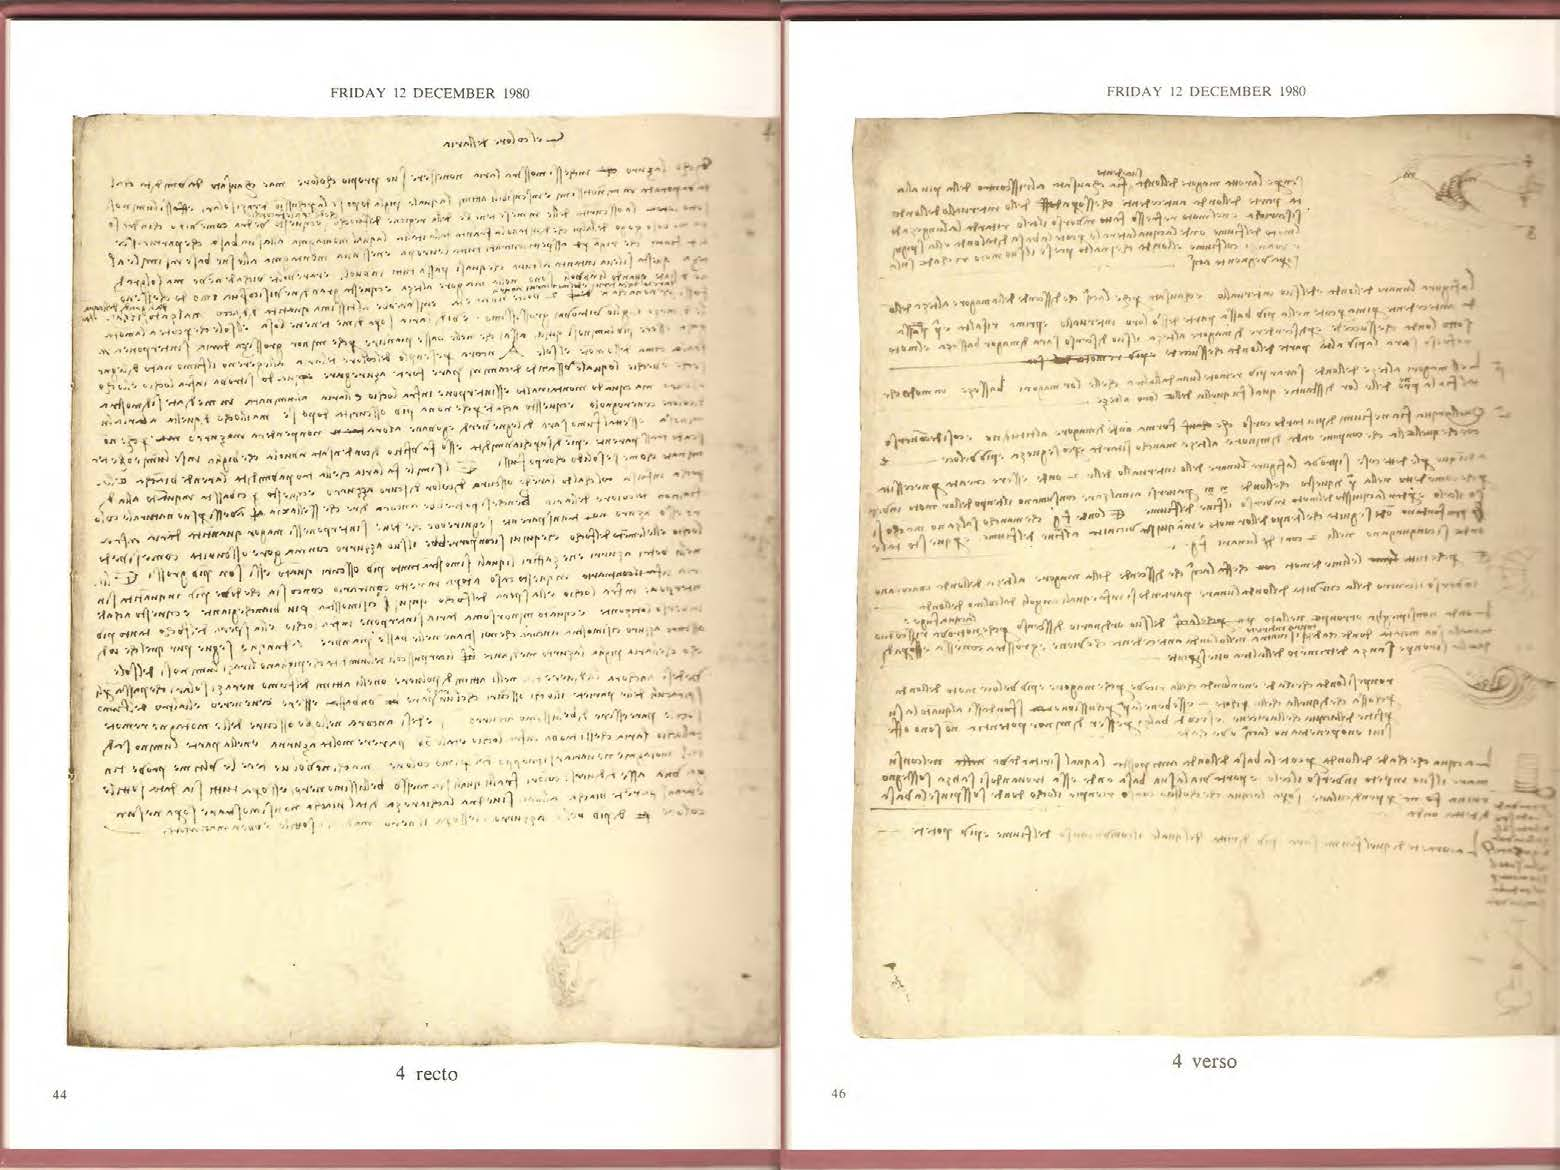 Codex_Leicester_Page_05_Image_0001.jpg